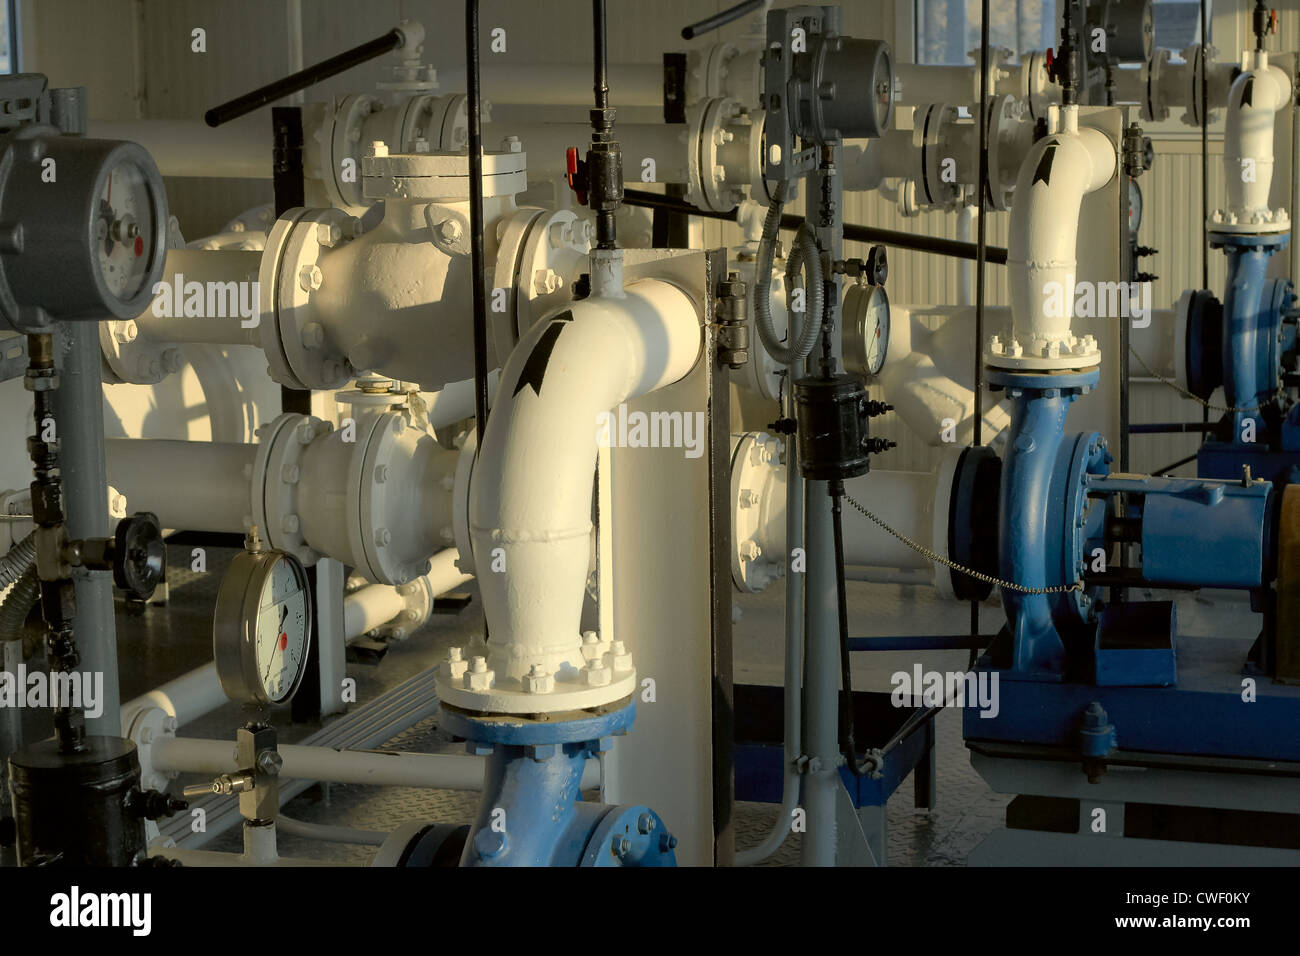 Apparatus, Assembly, Blue, Compression, Condensate, Connection, Control, Drive, Ducts, Engine, Equipment, Faucet, - Stock Image